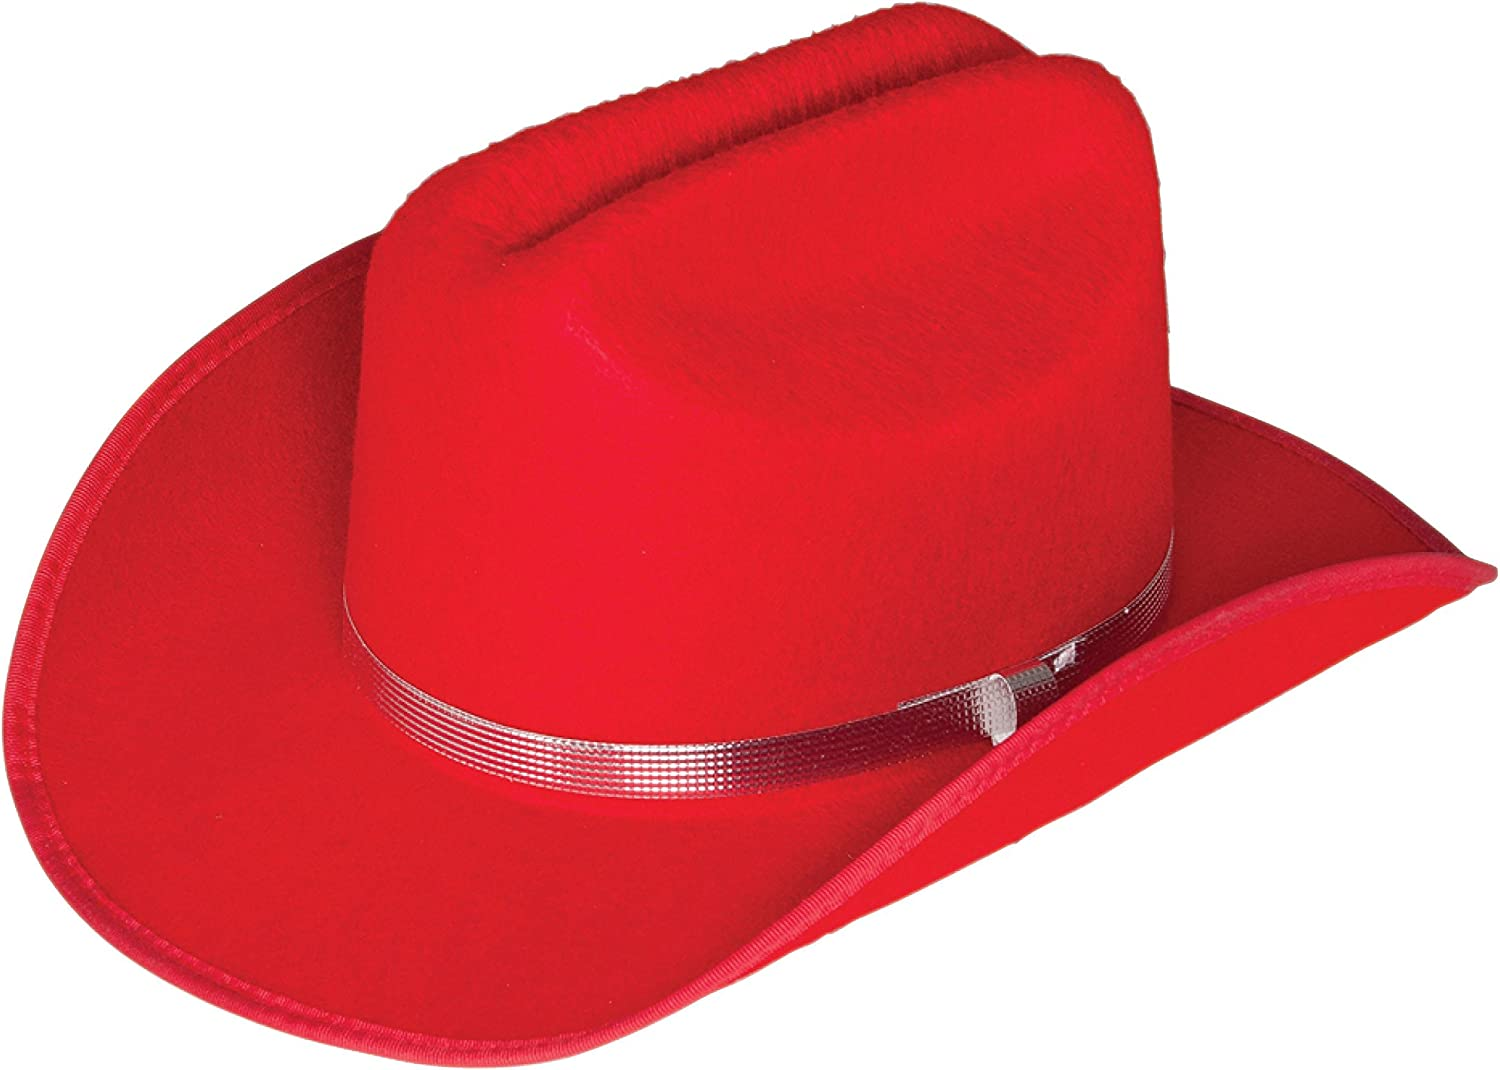 Jacobson Hat Fees free Company Child Permalux with Silver Indianapolis Mall Cattleman Cowboy